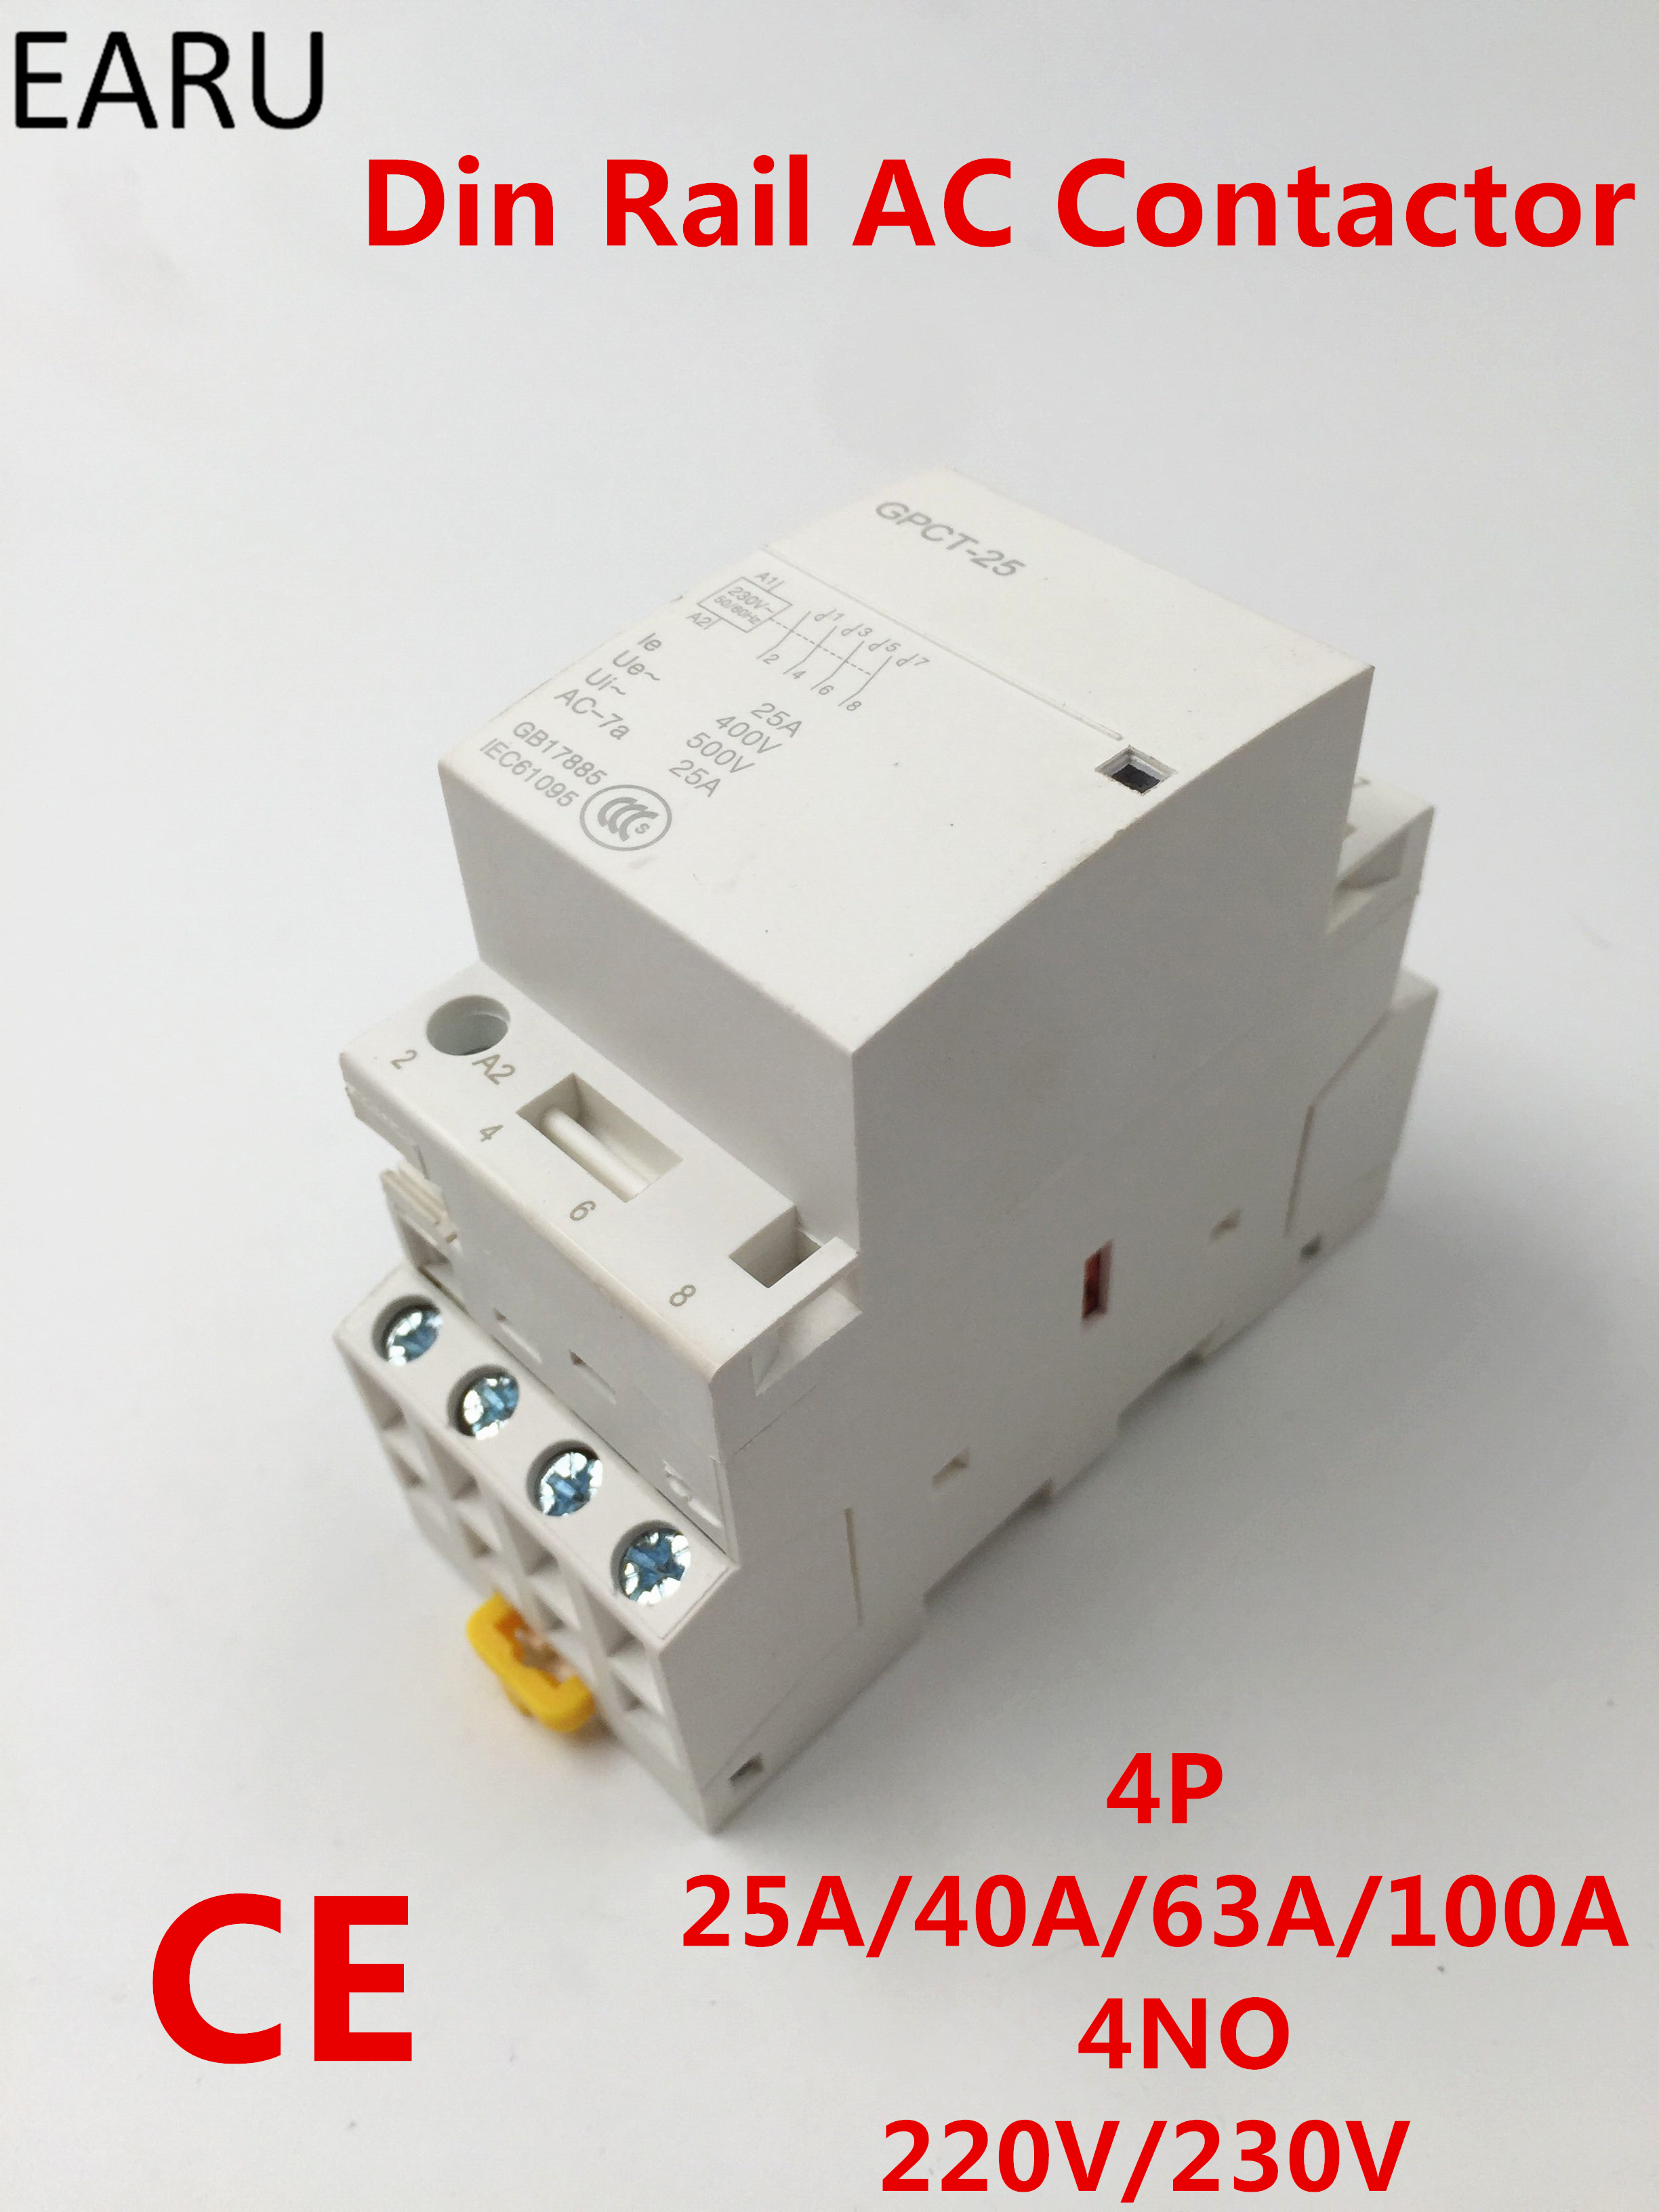 GPCT1 4P 25A 40A 63A 100A 220V/230V 50/60HZ Din rail Household Modular ac contactor Module 4NO for Home Hotel Resturant free shipping gpct1 2p 16a 25a 220v 230v 50 60hz din rail household ac contactor 2no for household home hotel resturant